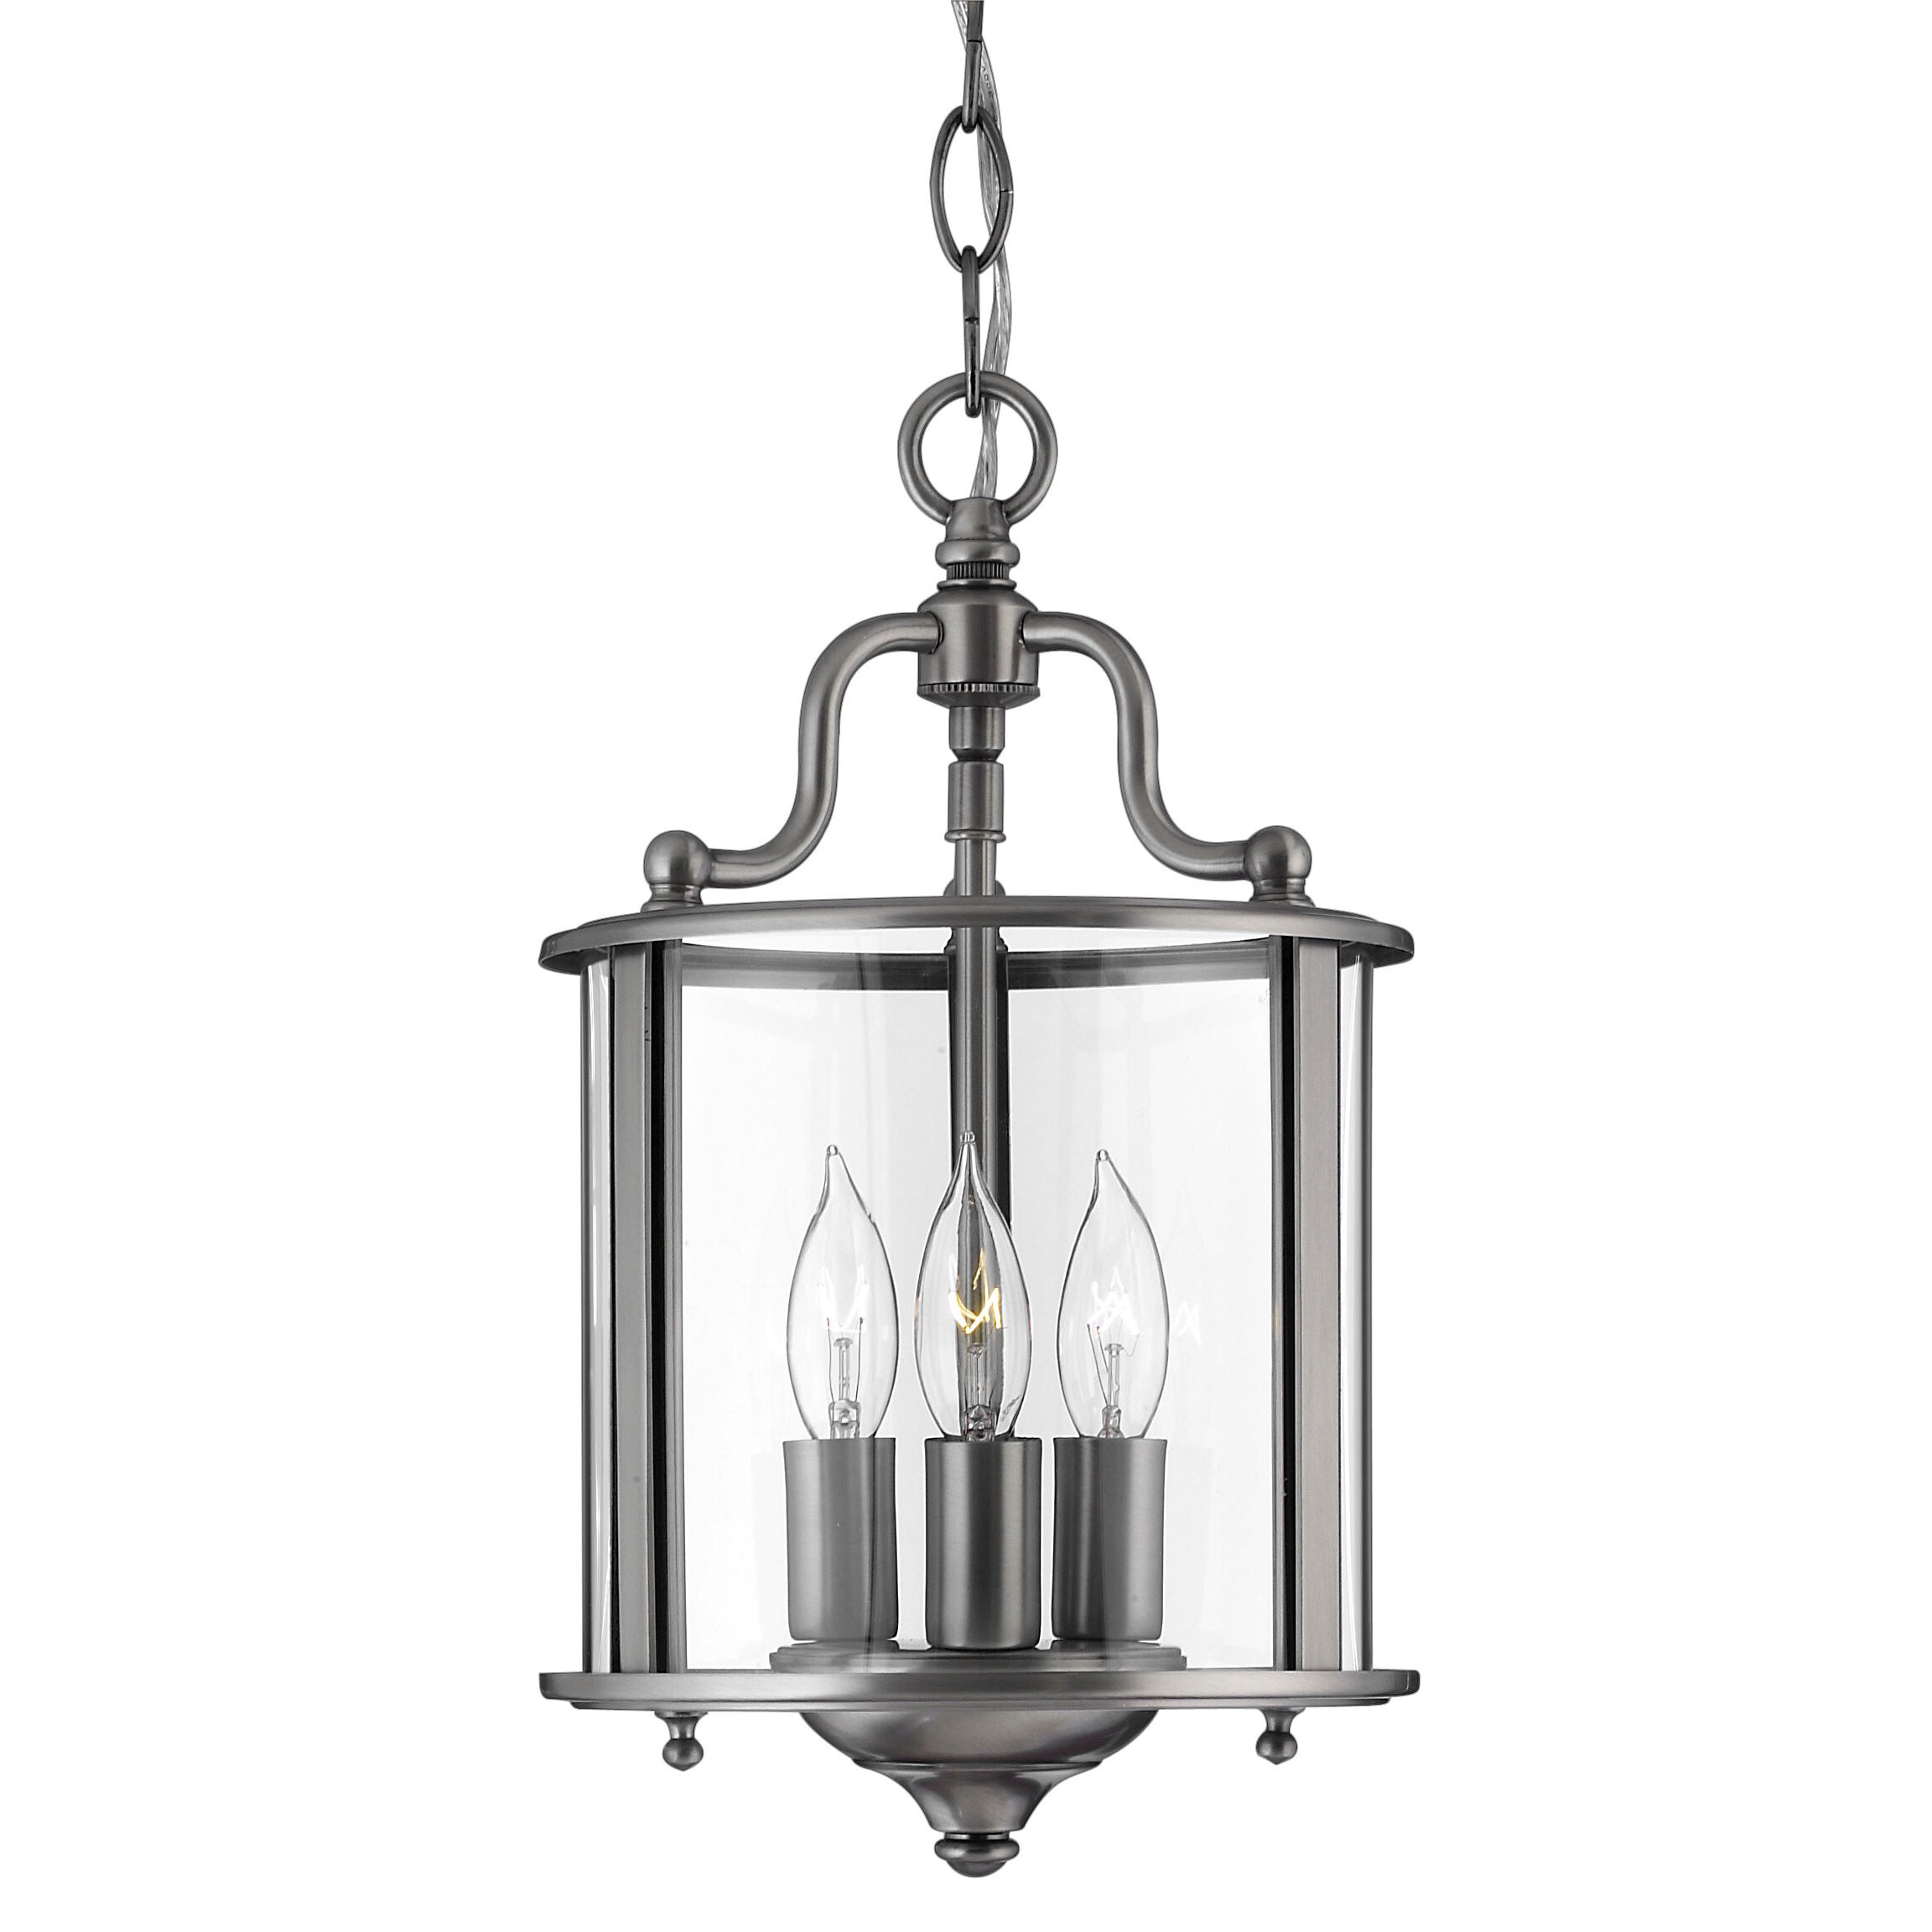 Foyer Pendant Lighting : Hinkley lighting gentry light foyer pendant reviews